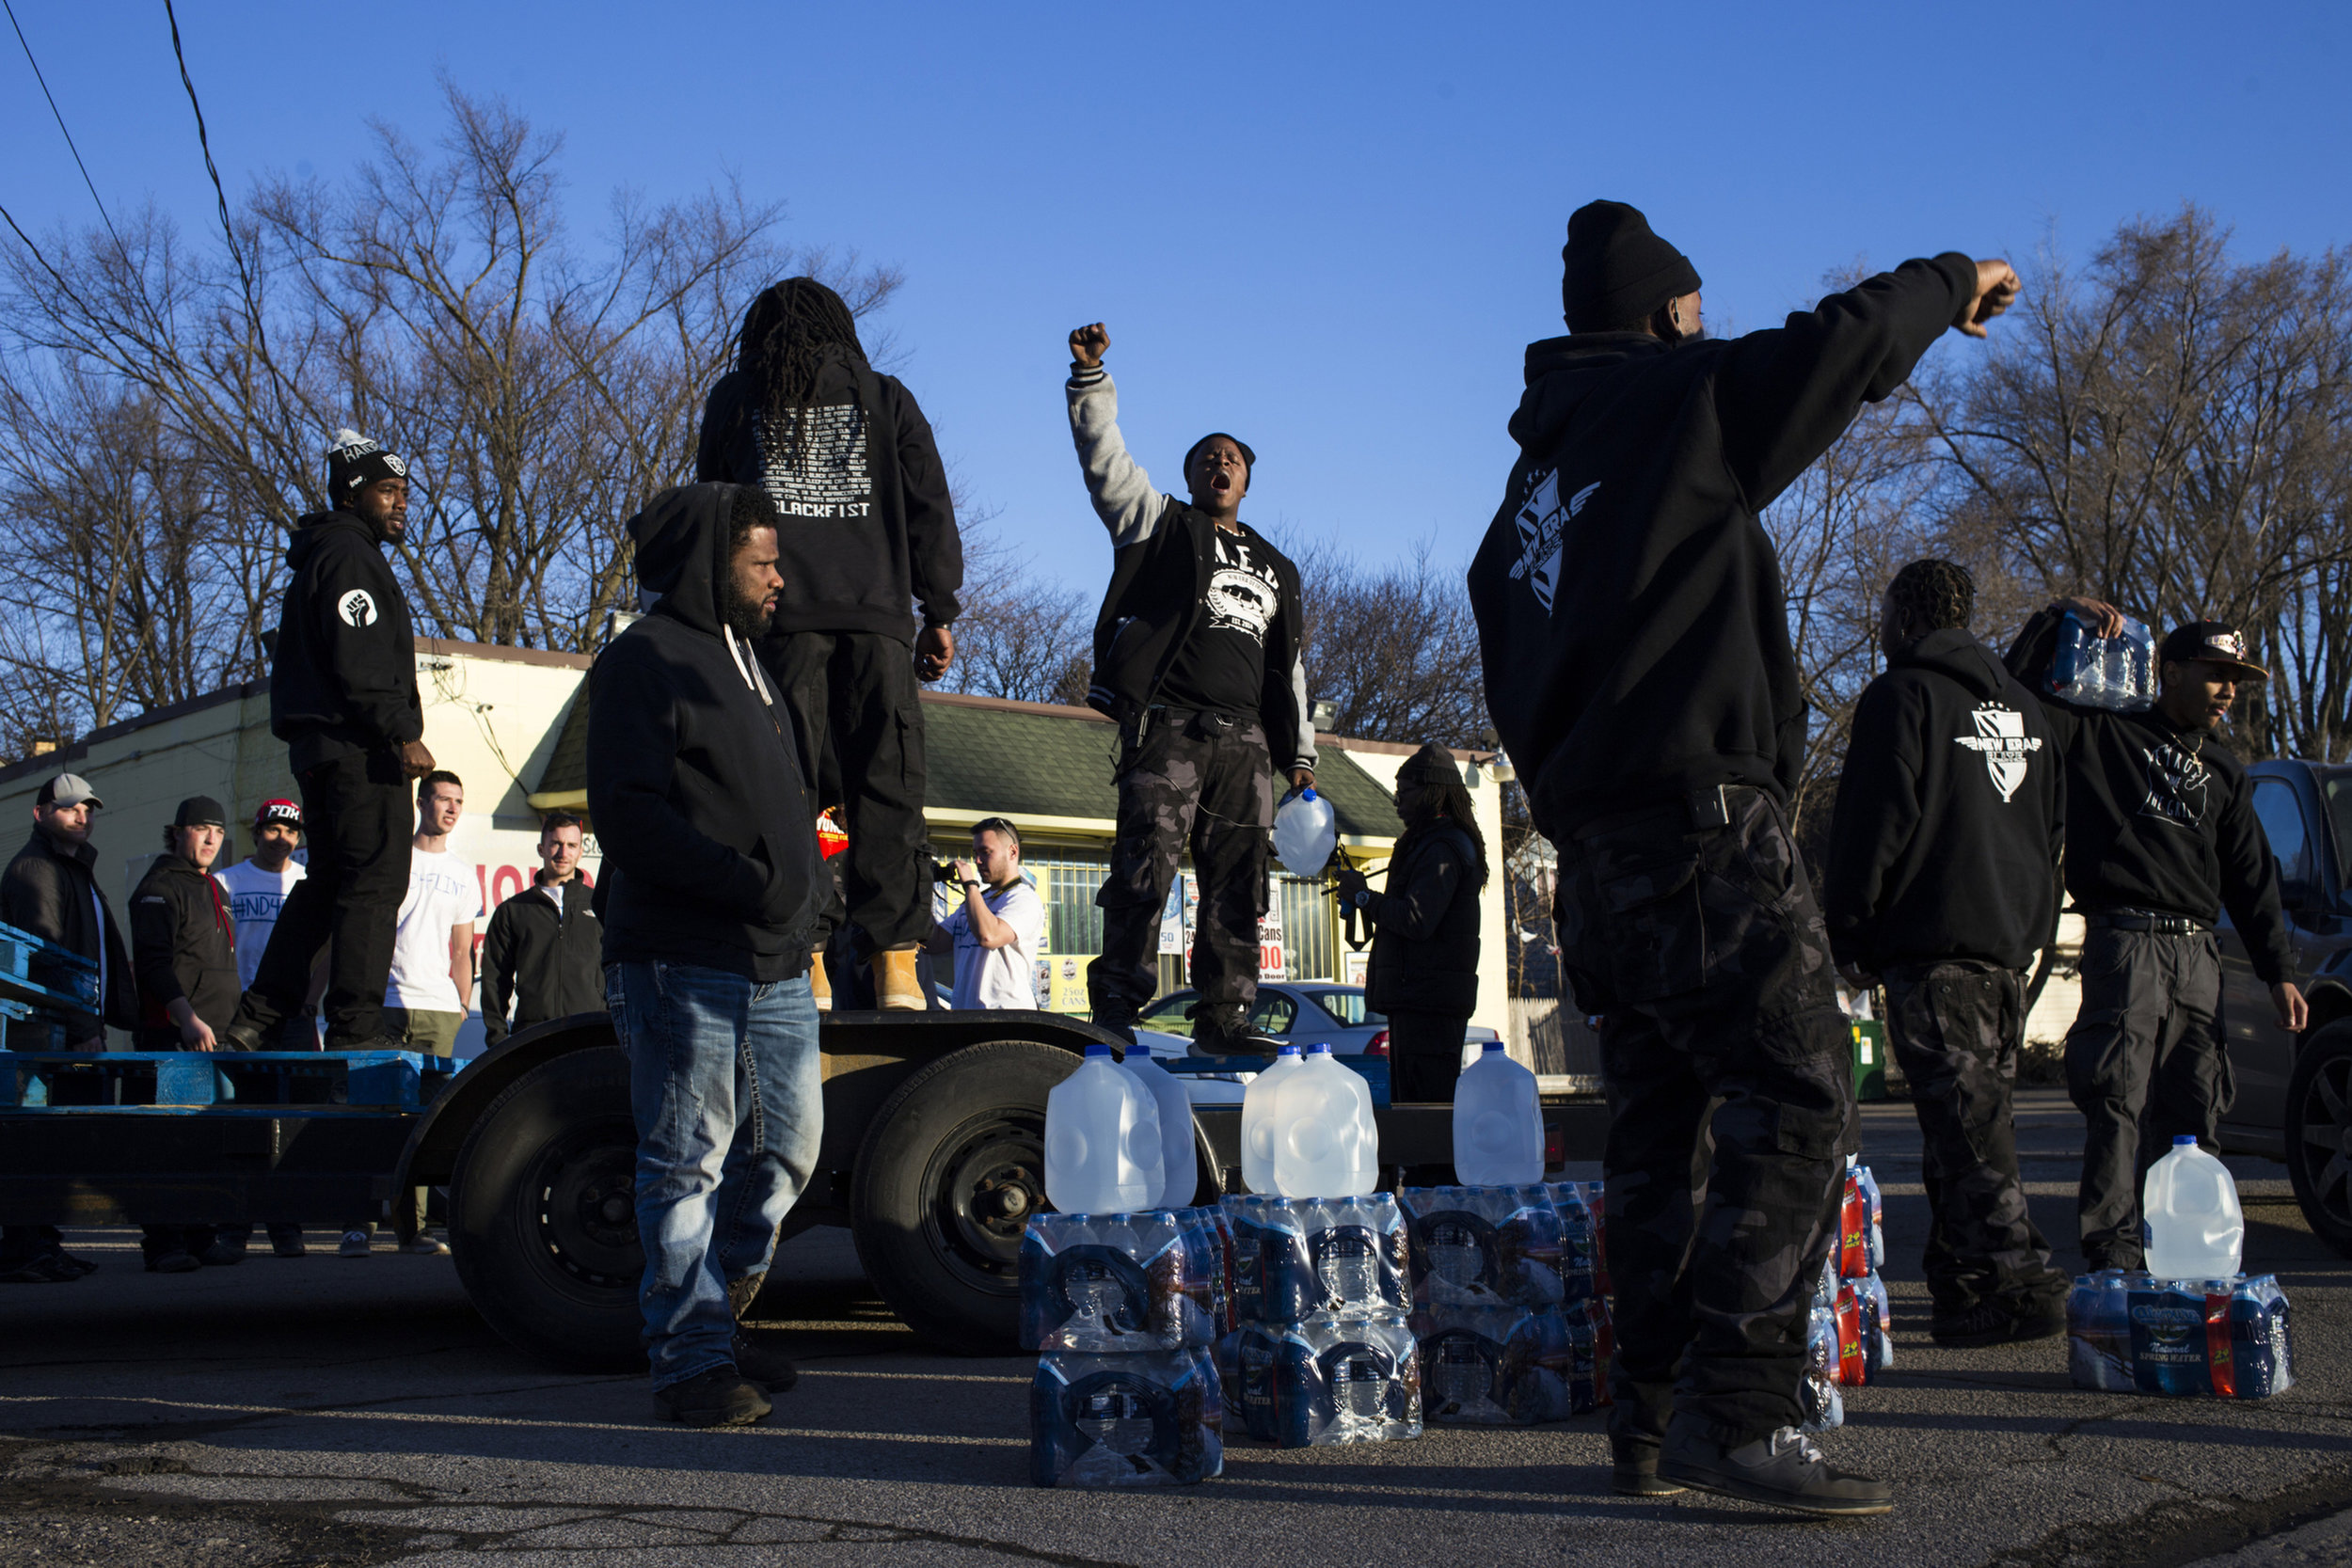 Members of New Era Detroit and friends gather and lead a chant outside of a convenient store to hand out water to Flint residents, as well as spread a message of racial equality, in Flint, Mich., on Saturday, February 20, 2016. Tensions mounted earlier when the owner of another convenient store wouldn't give business to a few members of the group, members said. Throughout Flint's water crisis, many residents begged the question whether or not it would have happened to a city that was predominately white.